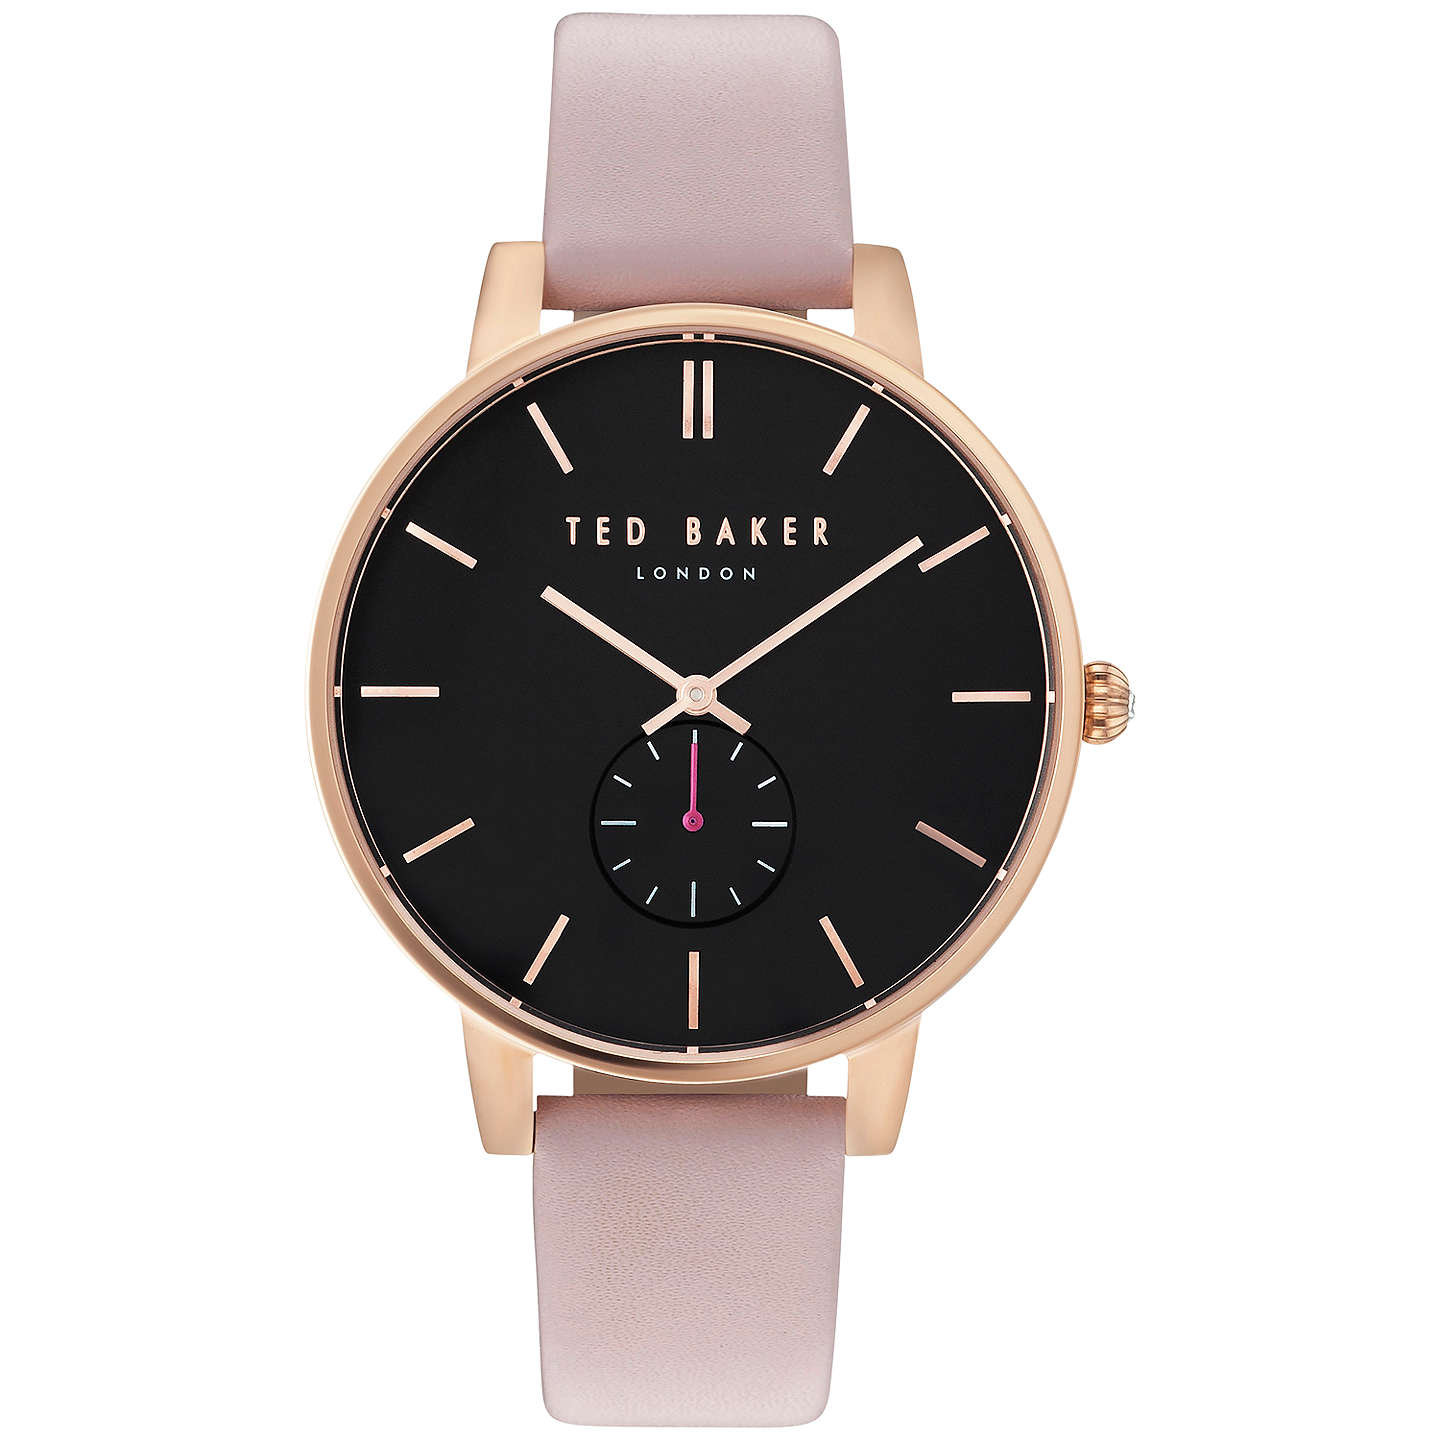 watch watches main image leather multifunction baker pin london ted strap